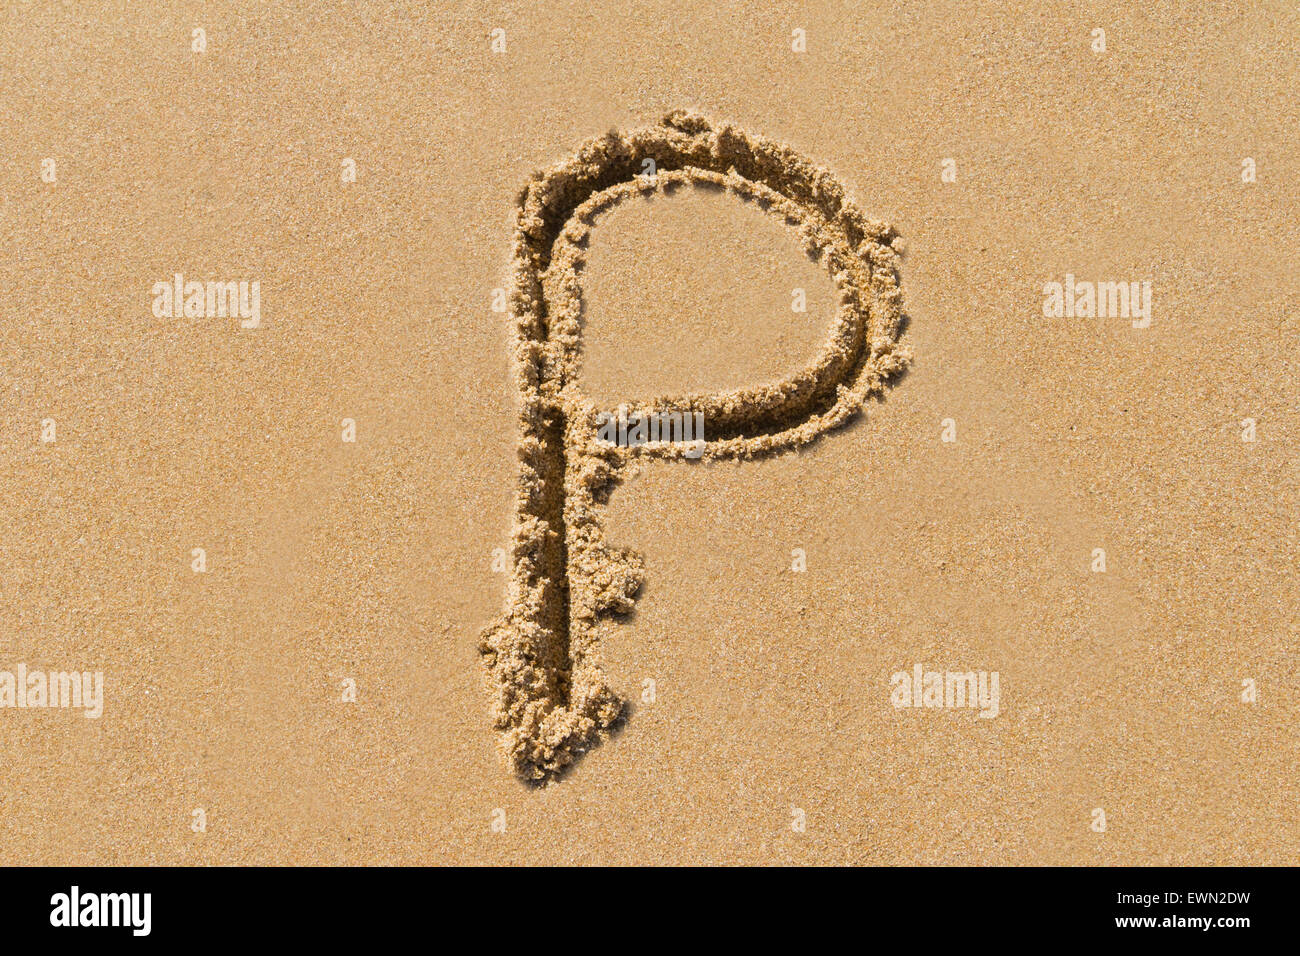 Letter P of the alphabet written on sand with upper case. - Stock Image